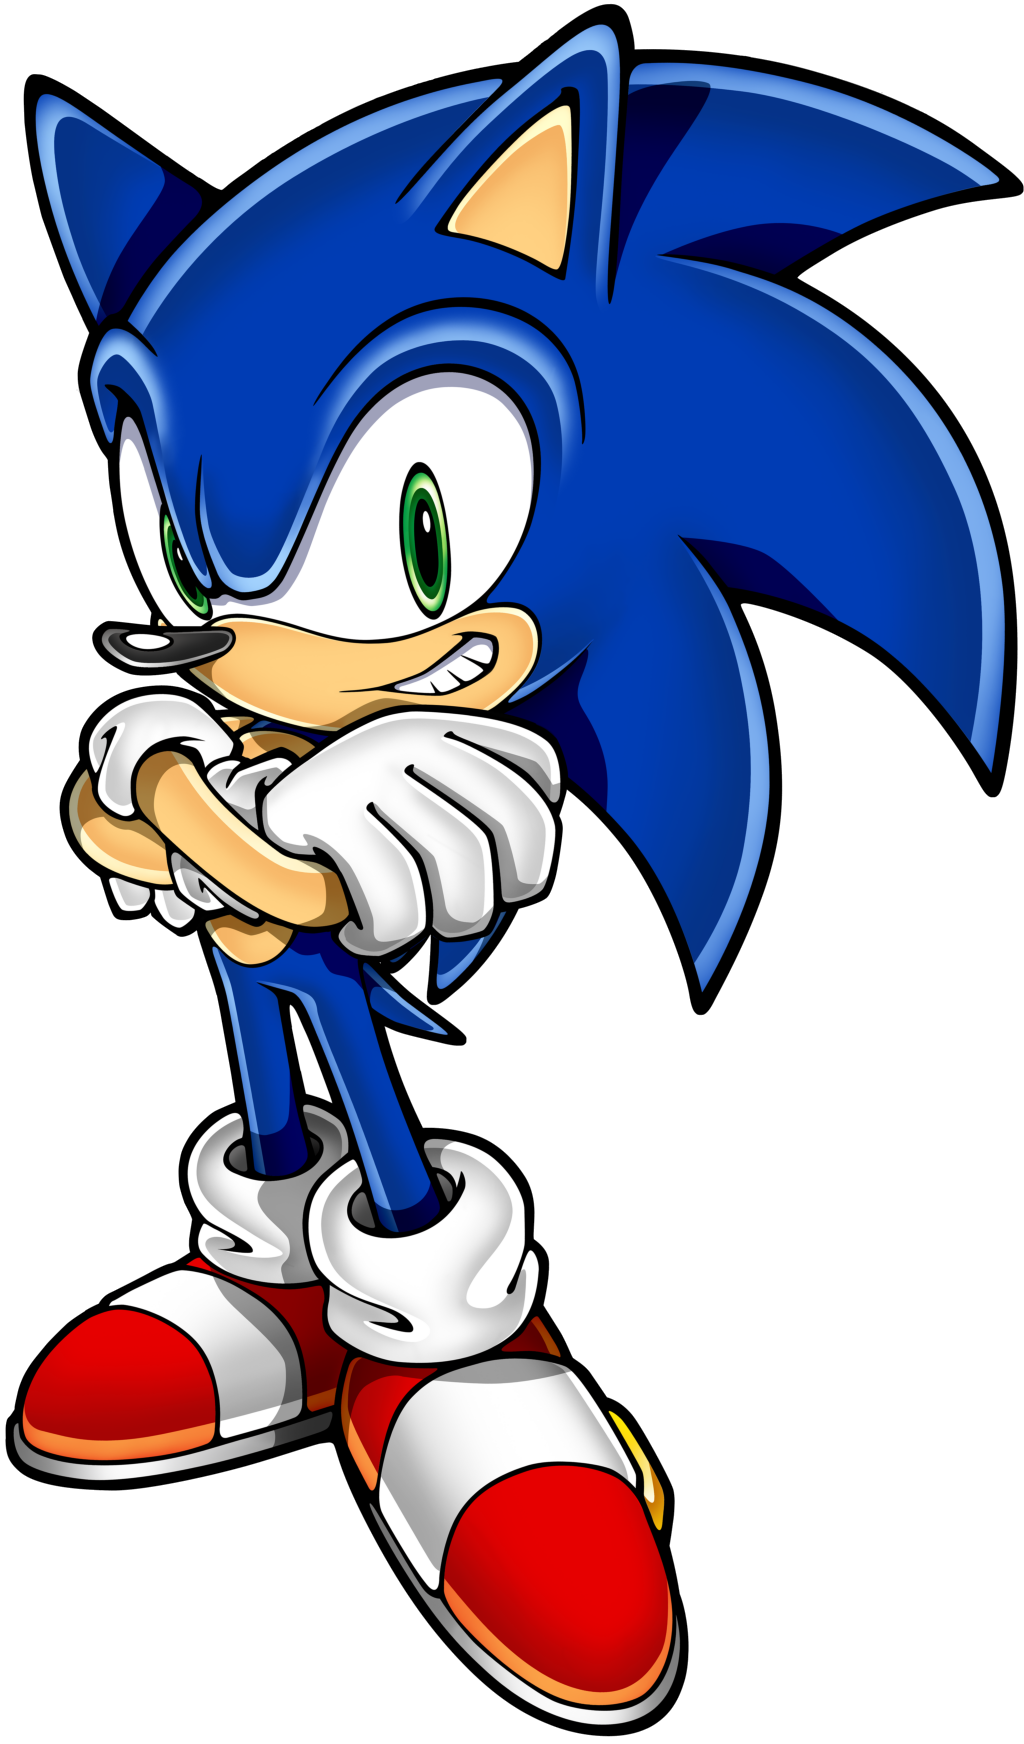 Sonic the hedgehog png. Image plants vs zombies